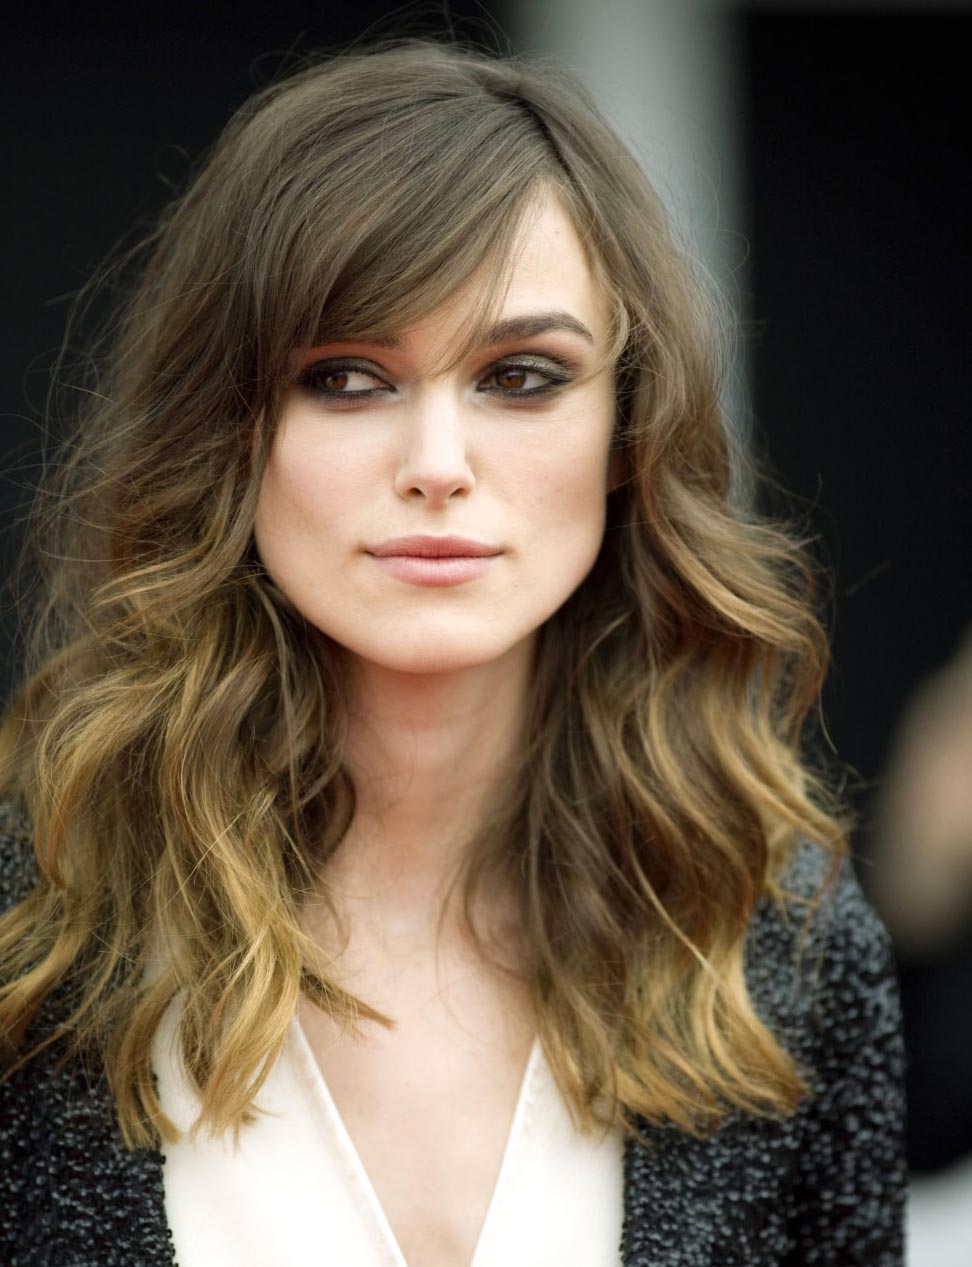 Fantastic Top 10 Best Hairstyles For Big Foreheads Female Short Hairstyles Gunalazisus